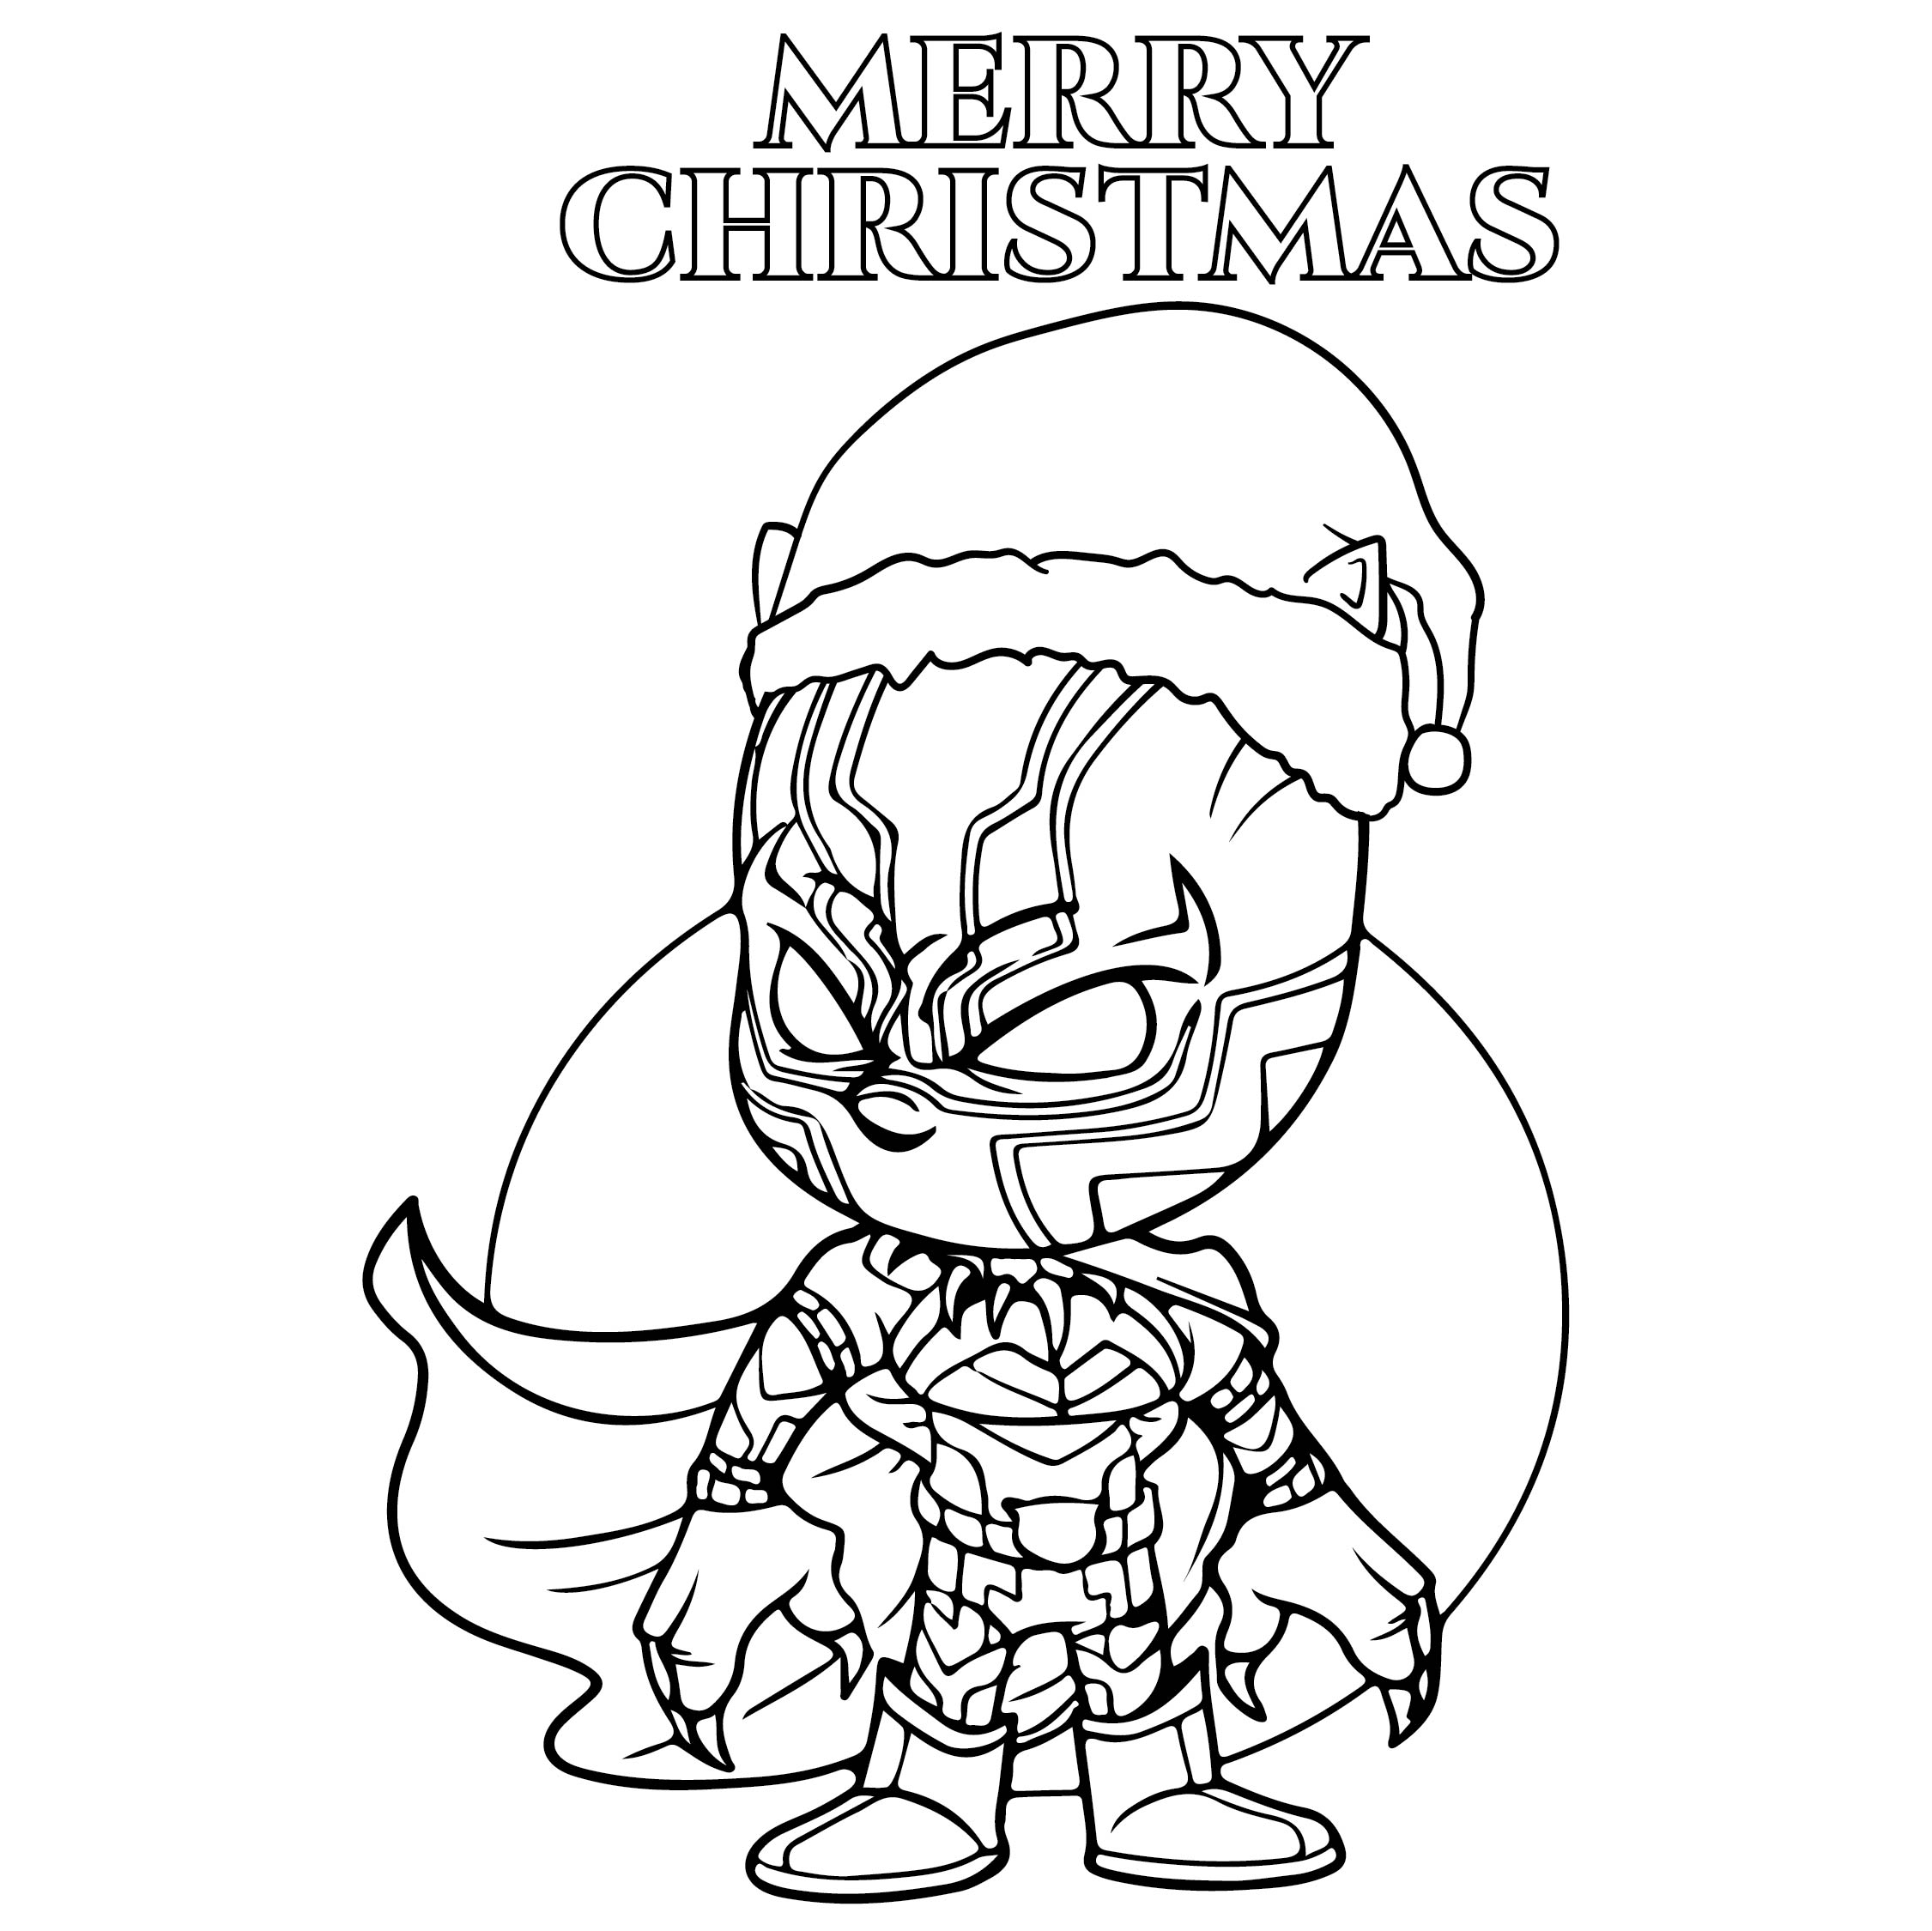 7 Best Images of Christmas Coloring Printable Invitations